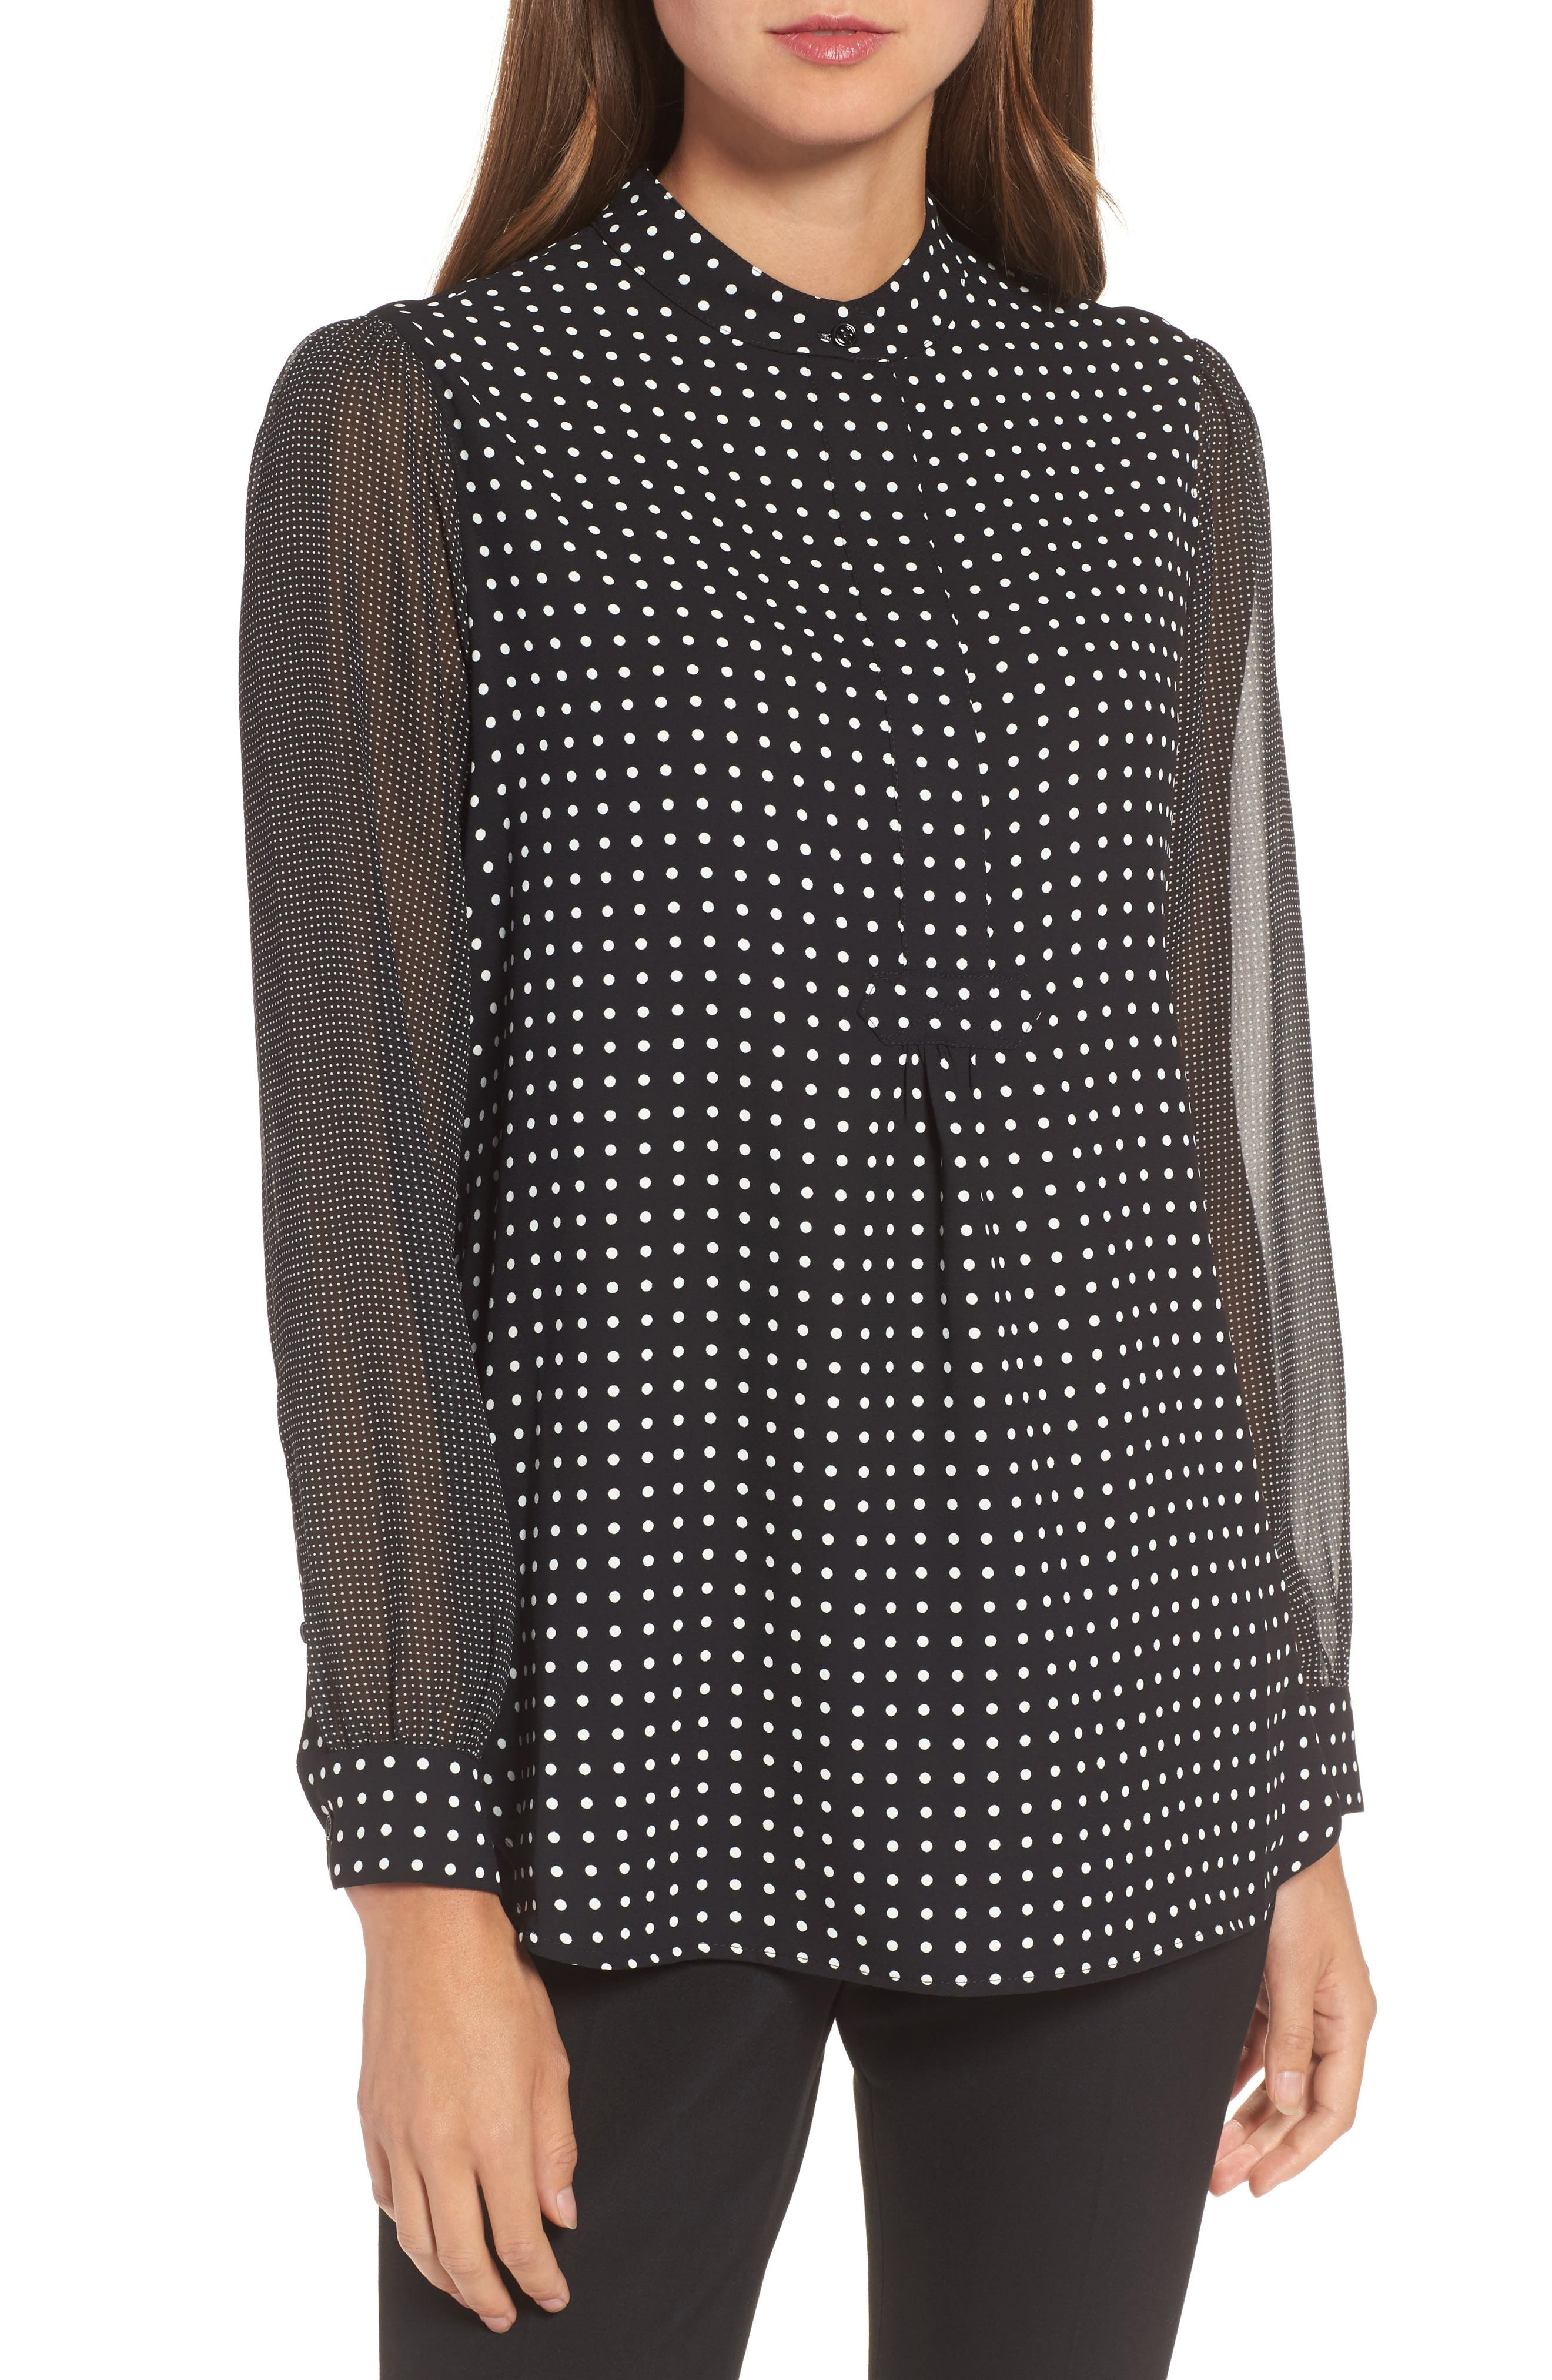 Main Image - Anne Klein Mixed Dot Print Blouse